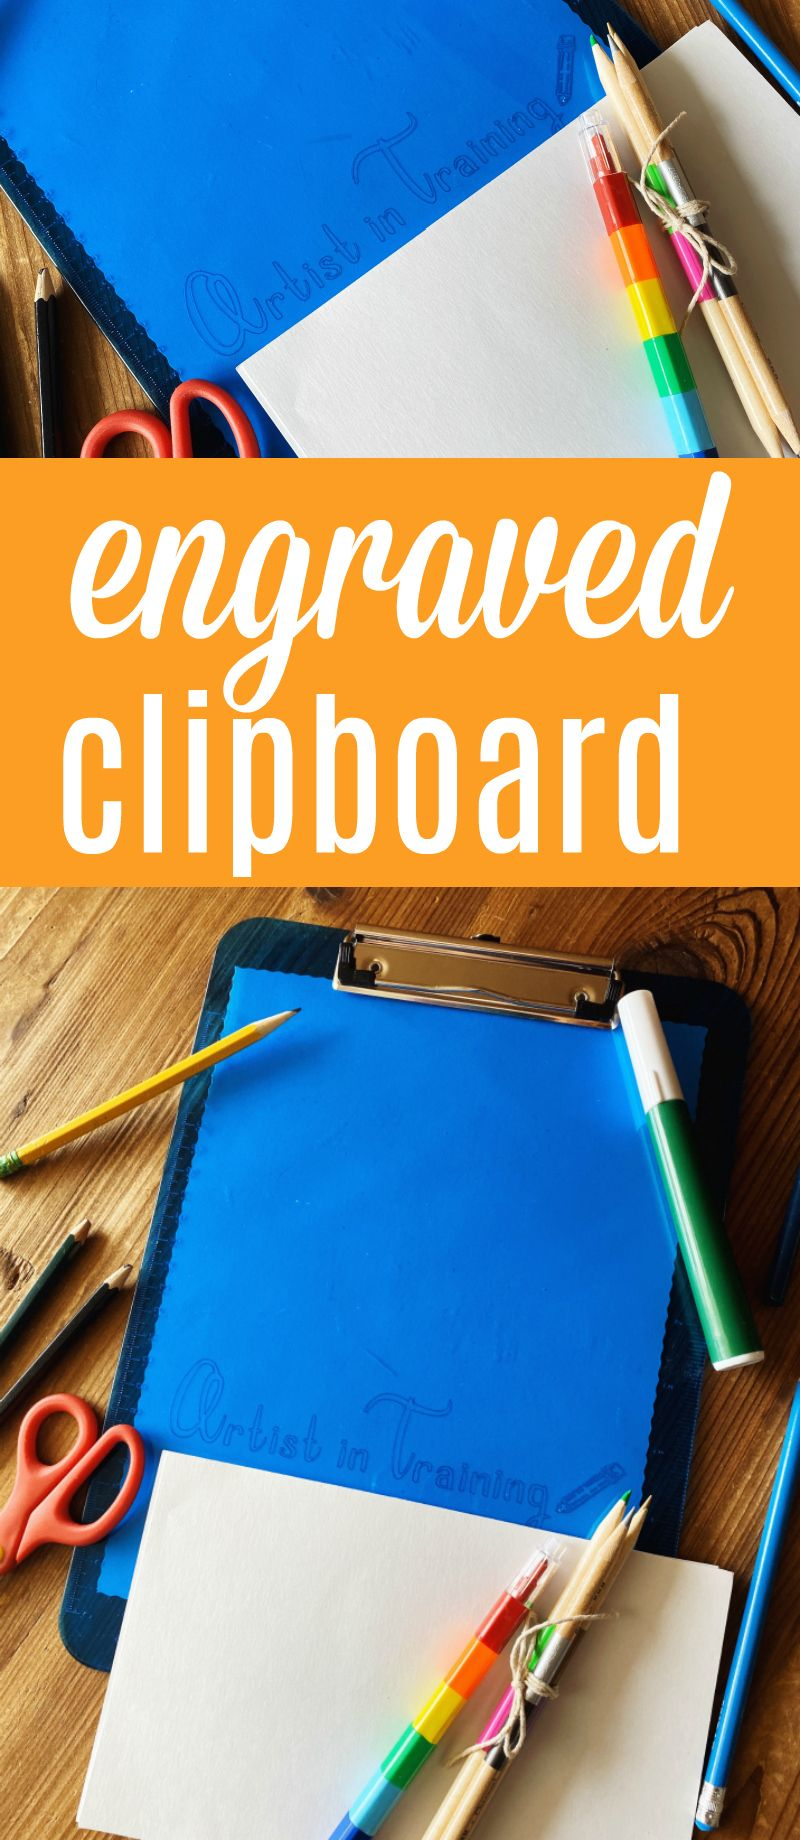 Learn How To Make Personalized Precision Engraved Clipboards With Cricut Maker S Newest Line Cricut Projects Beginner Personalized Clipboards Cricut Projects